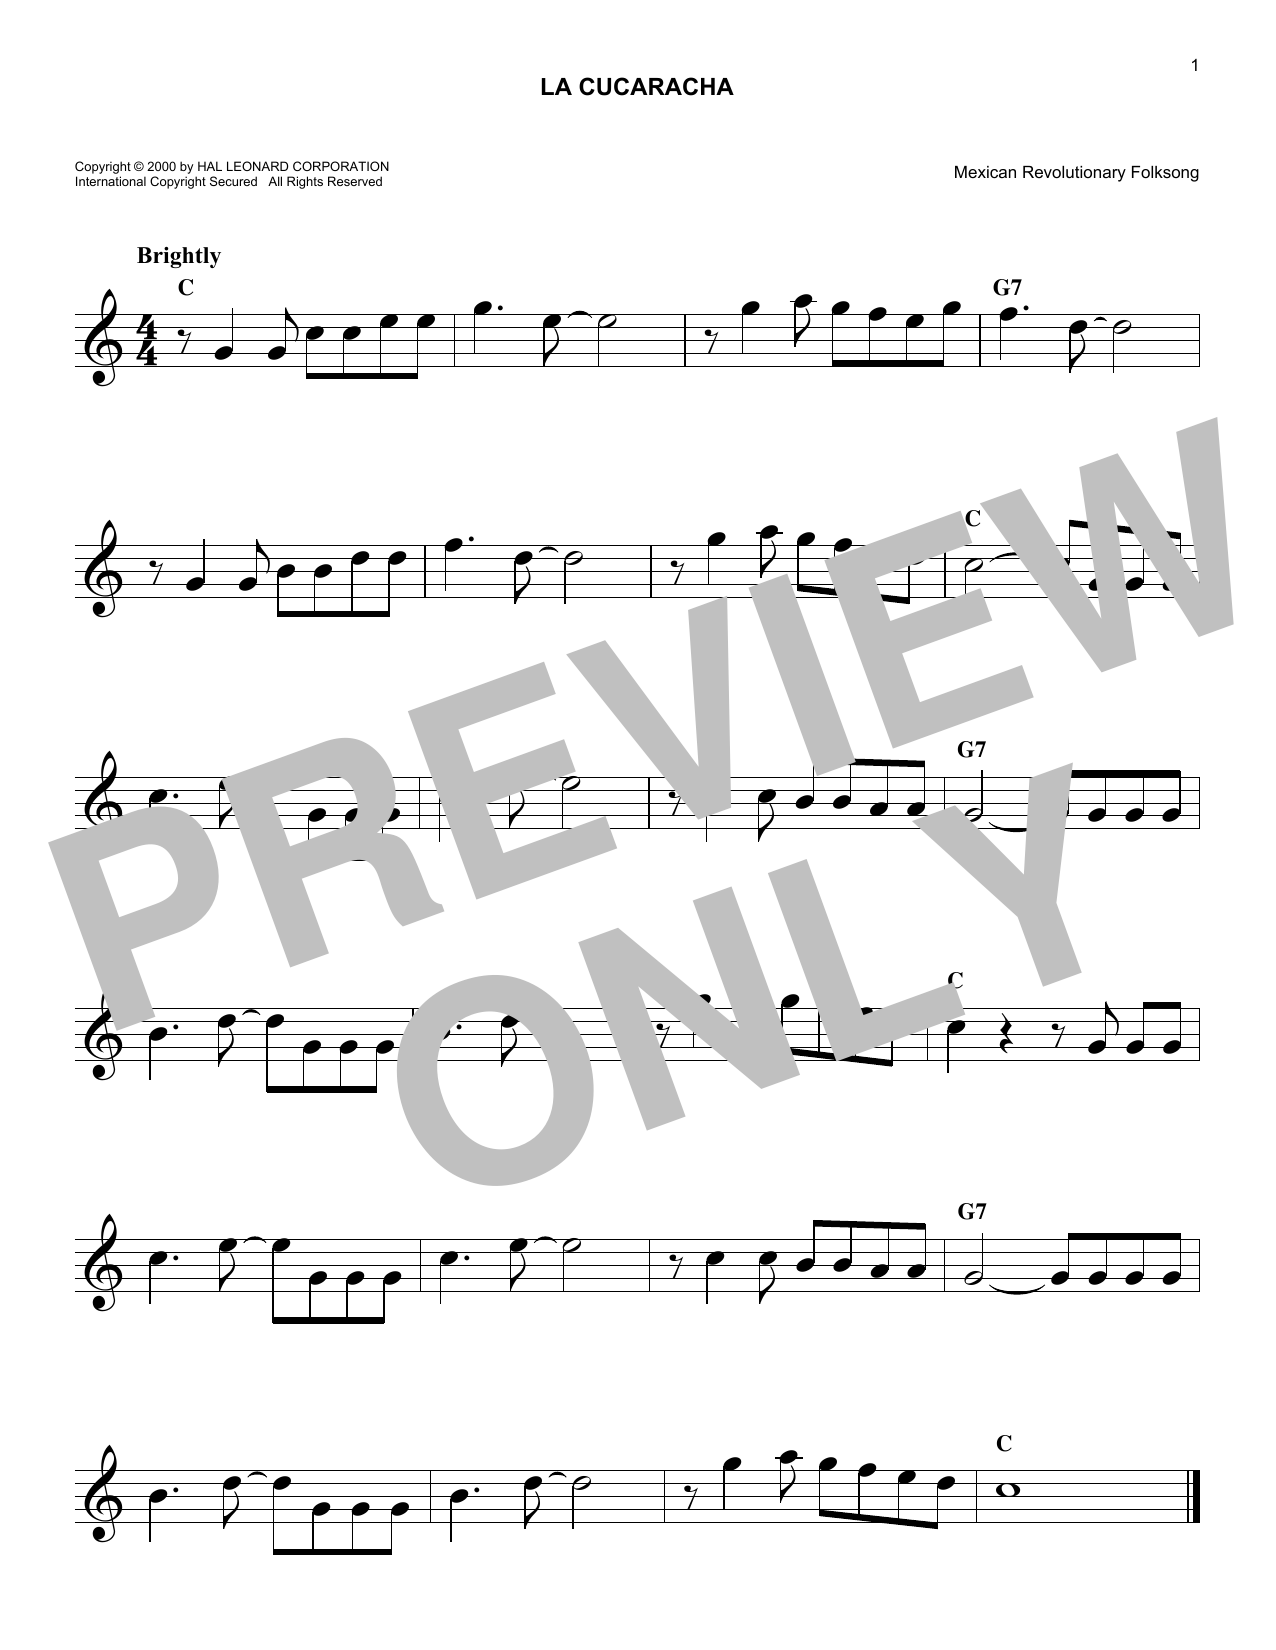 Mexican Revolution Folksong La Cucaracha sheet music preview music notes and score for Piano including 2 page(s)